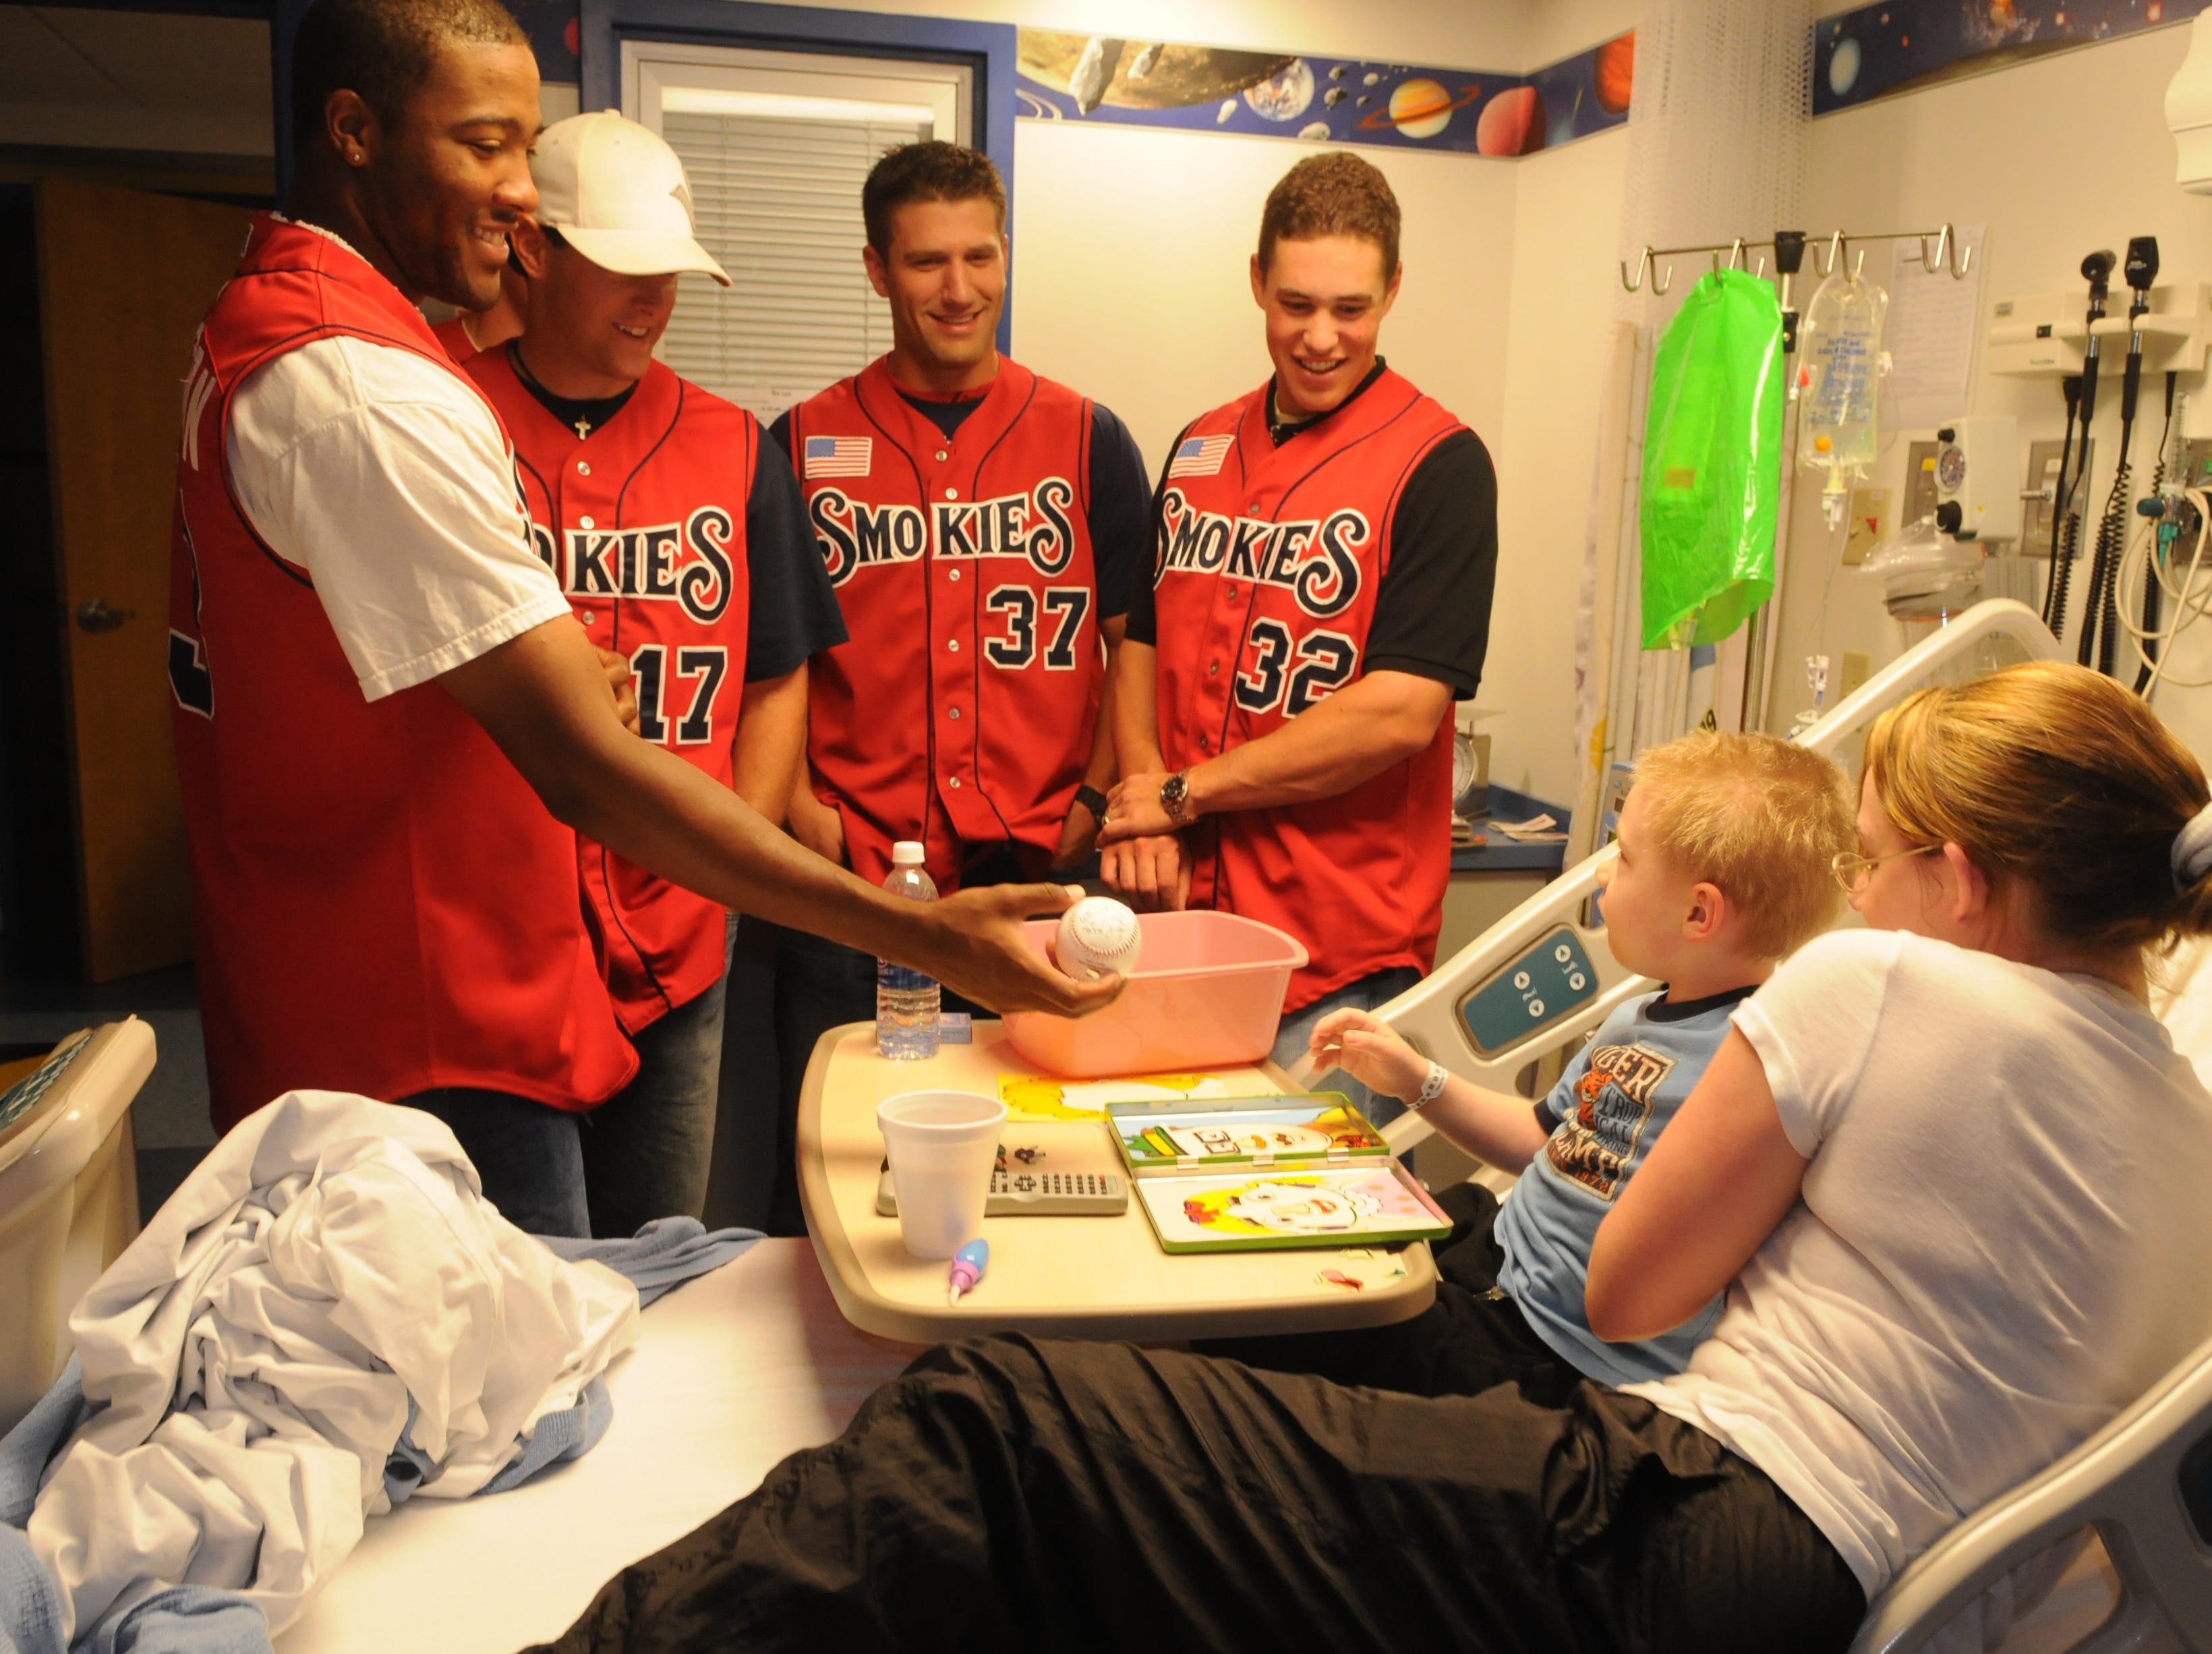 Davyn Mengeling, 4, and his mother Stephanie Mengeling, right,  get a autographed baseball from Tennessee Smokies baseball players, #13 Jay Jackson, left, #17 Casey Coleman, #37Russ Canzler, and #32 Blake Lalli.   The players were visiting Children Hospital with their Coach Ryne Sandberg and his wife Margaret Sandberg Wednesday morning. Baseball player for the Knoxville Smokies team and manager Ryne Sandberg visited Children's Hospital on  Wednesday, May 27, 2009